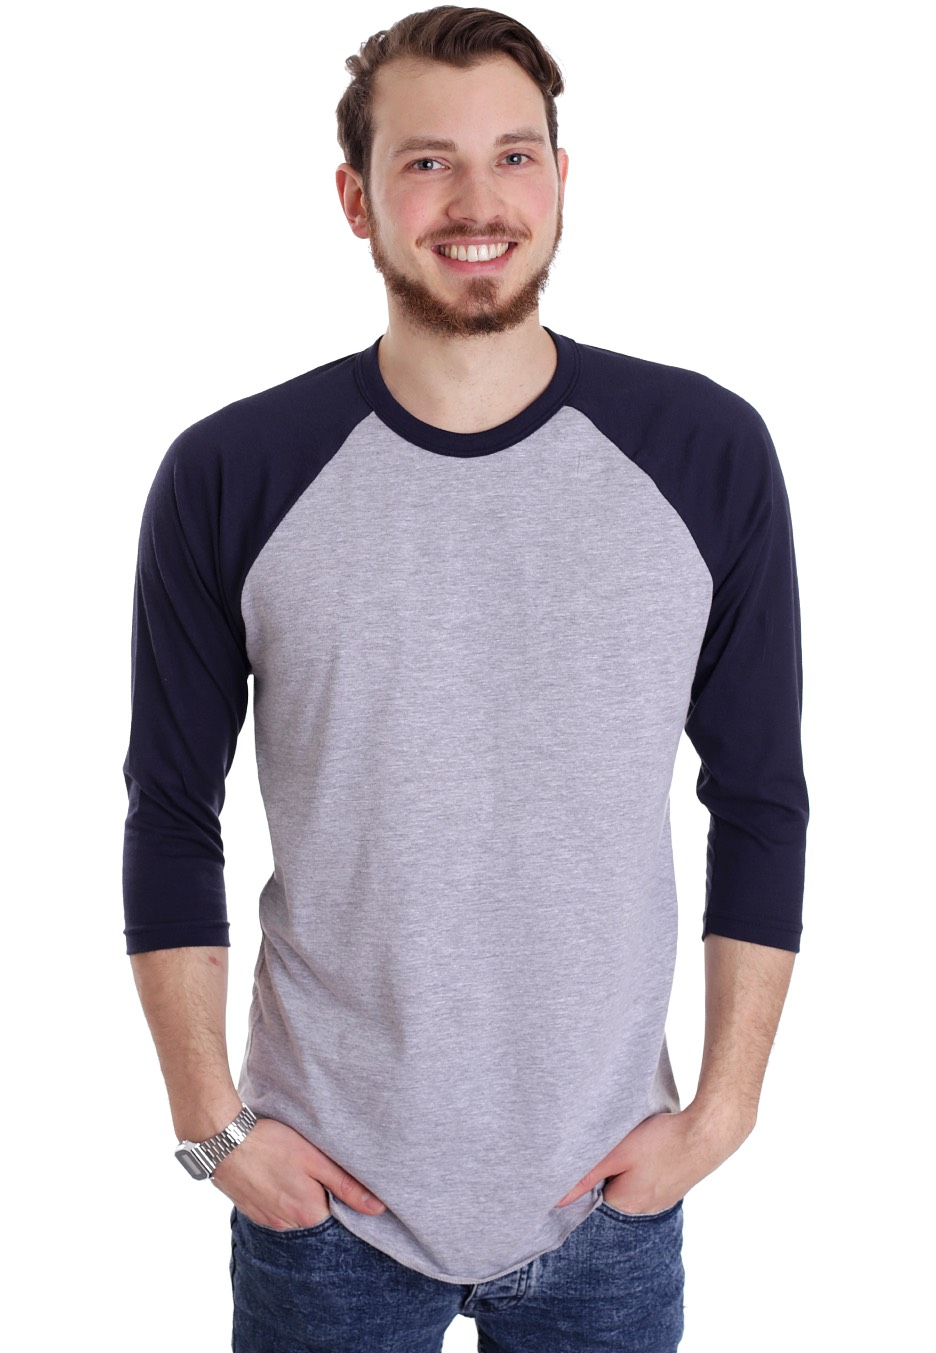 American Apparel - Raglan Heather Grey/Navy - Longsleeve ...